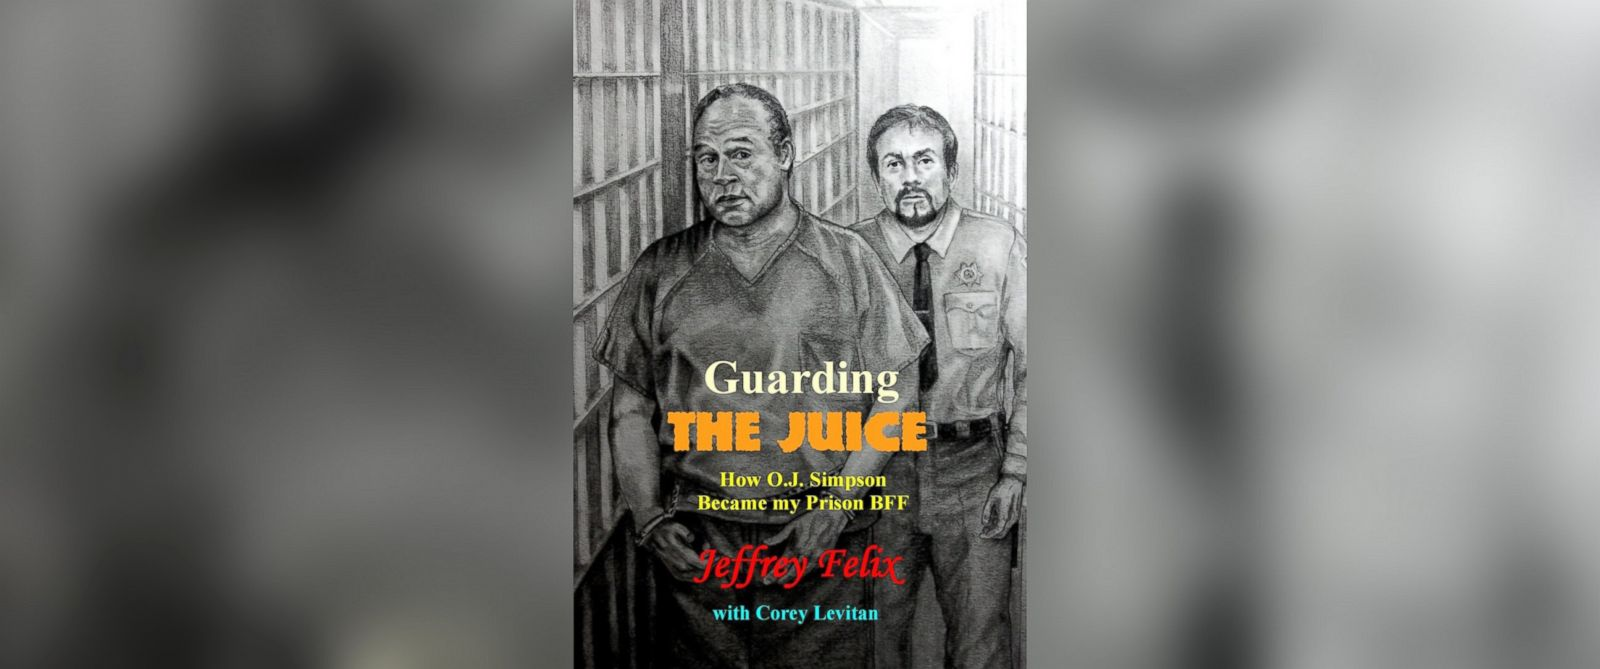 """PHOTO: Former correctional officer Jeffrey Felix is the author of a new tell-all book, """"Guarding the Juice,"""" about O.J. Simpson."""